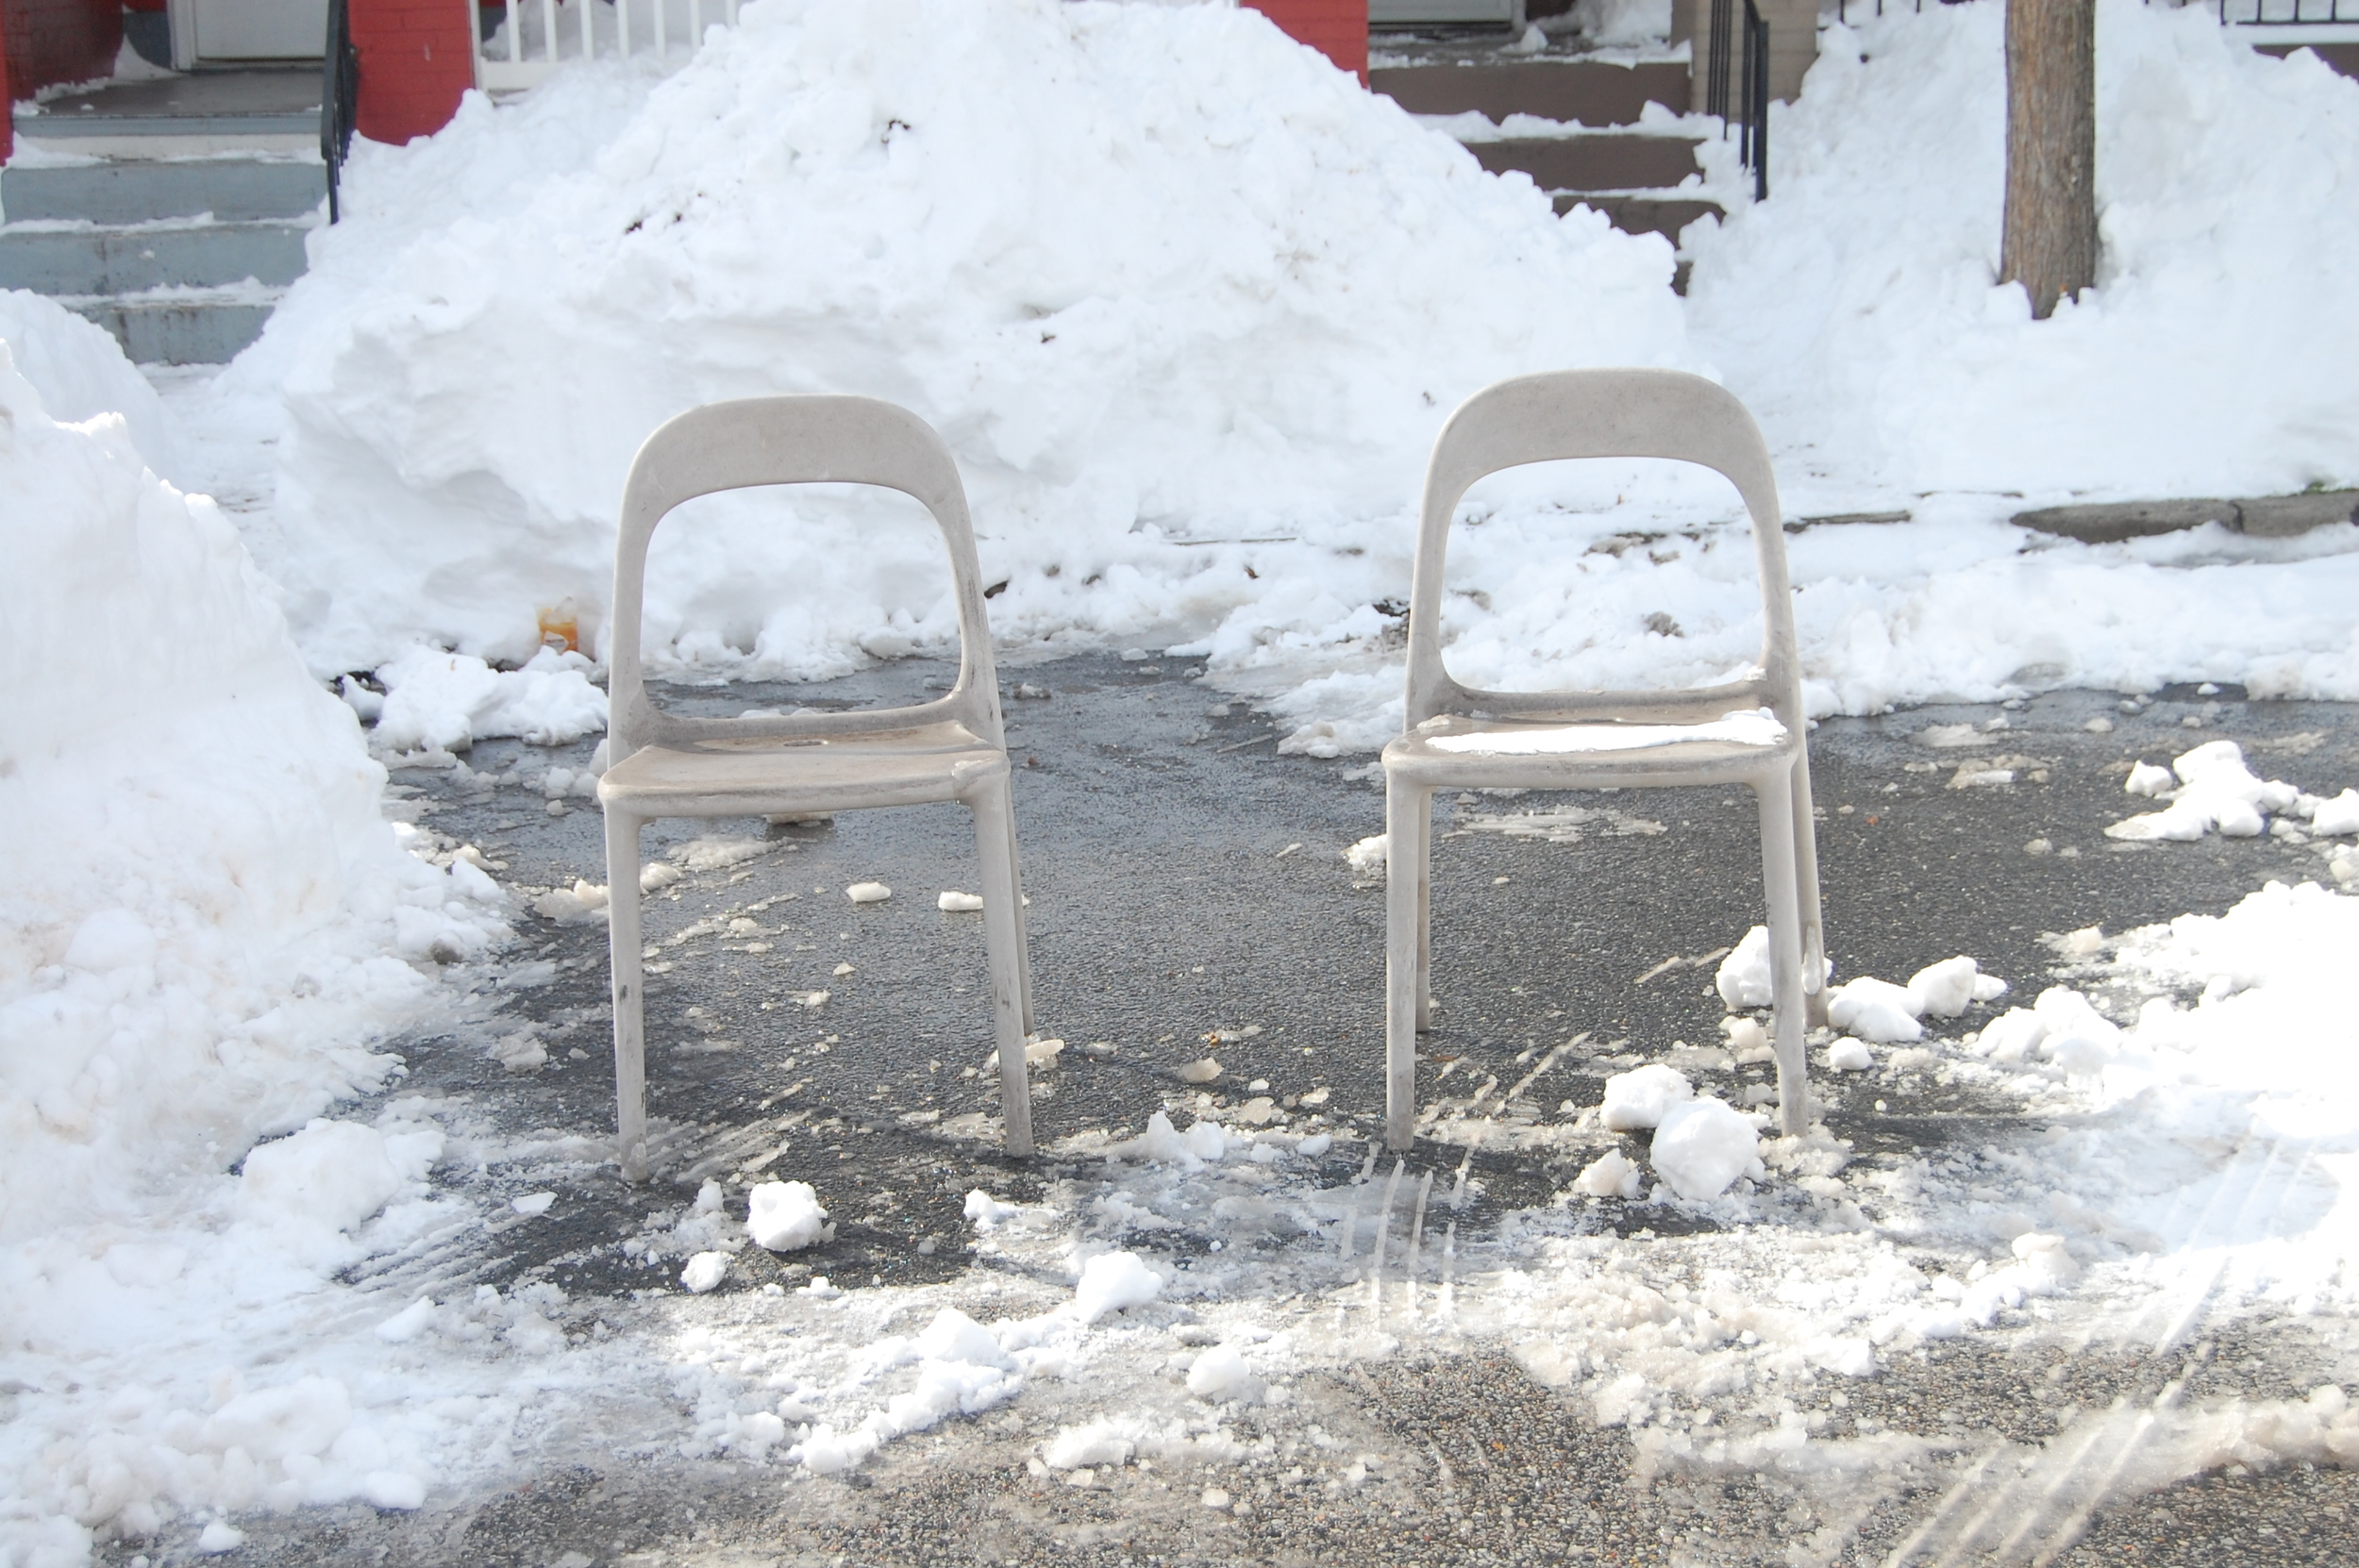 Baltimorean Tradition  of Placing Chairs to Save Shoveled Parking Spots